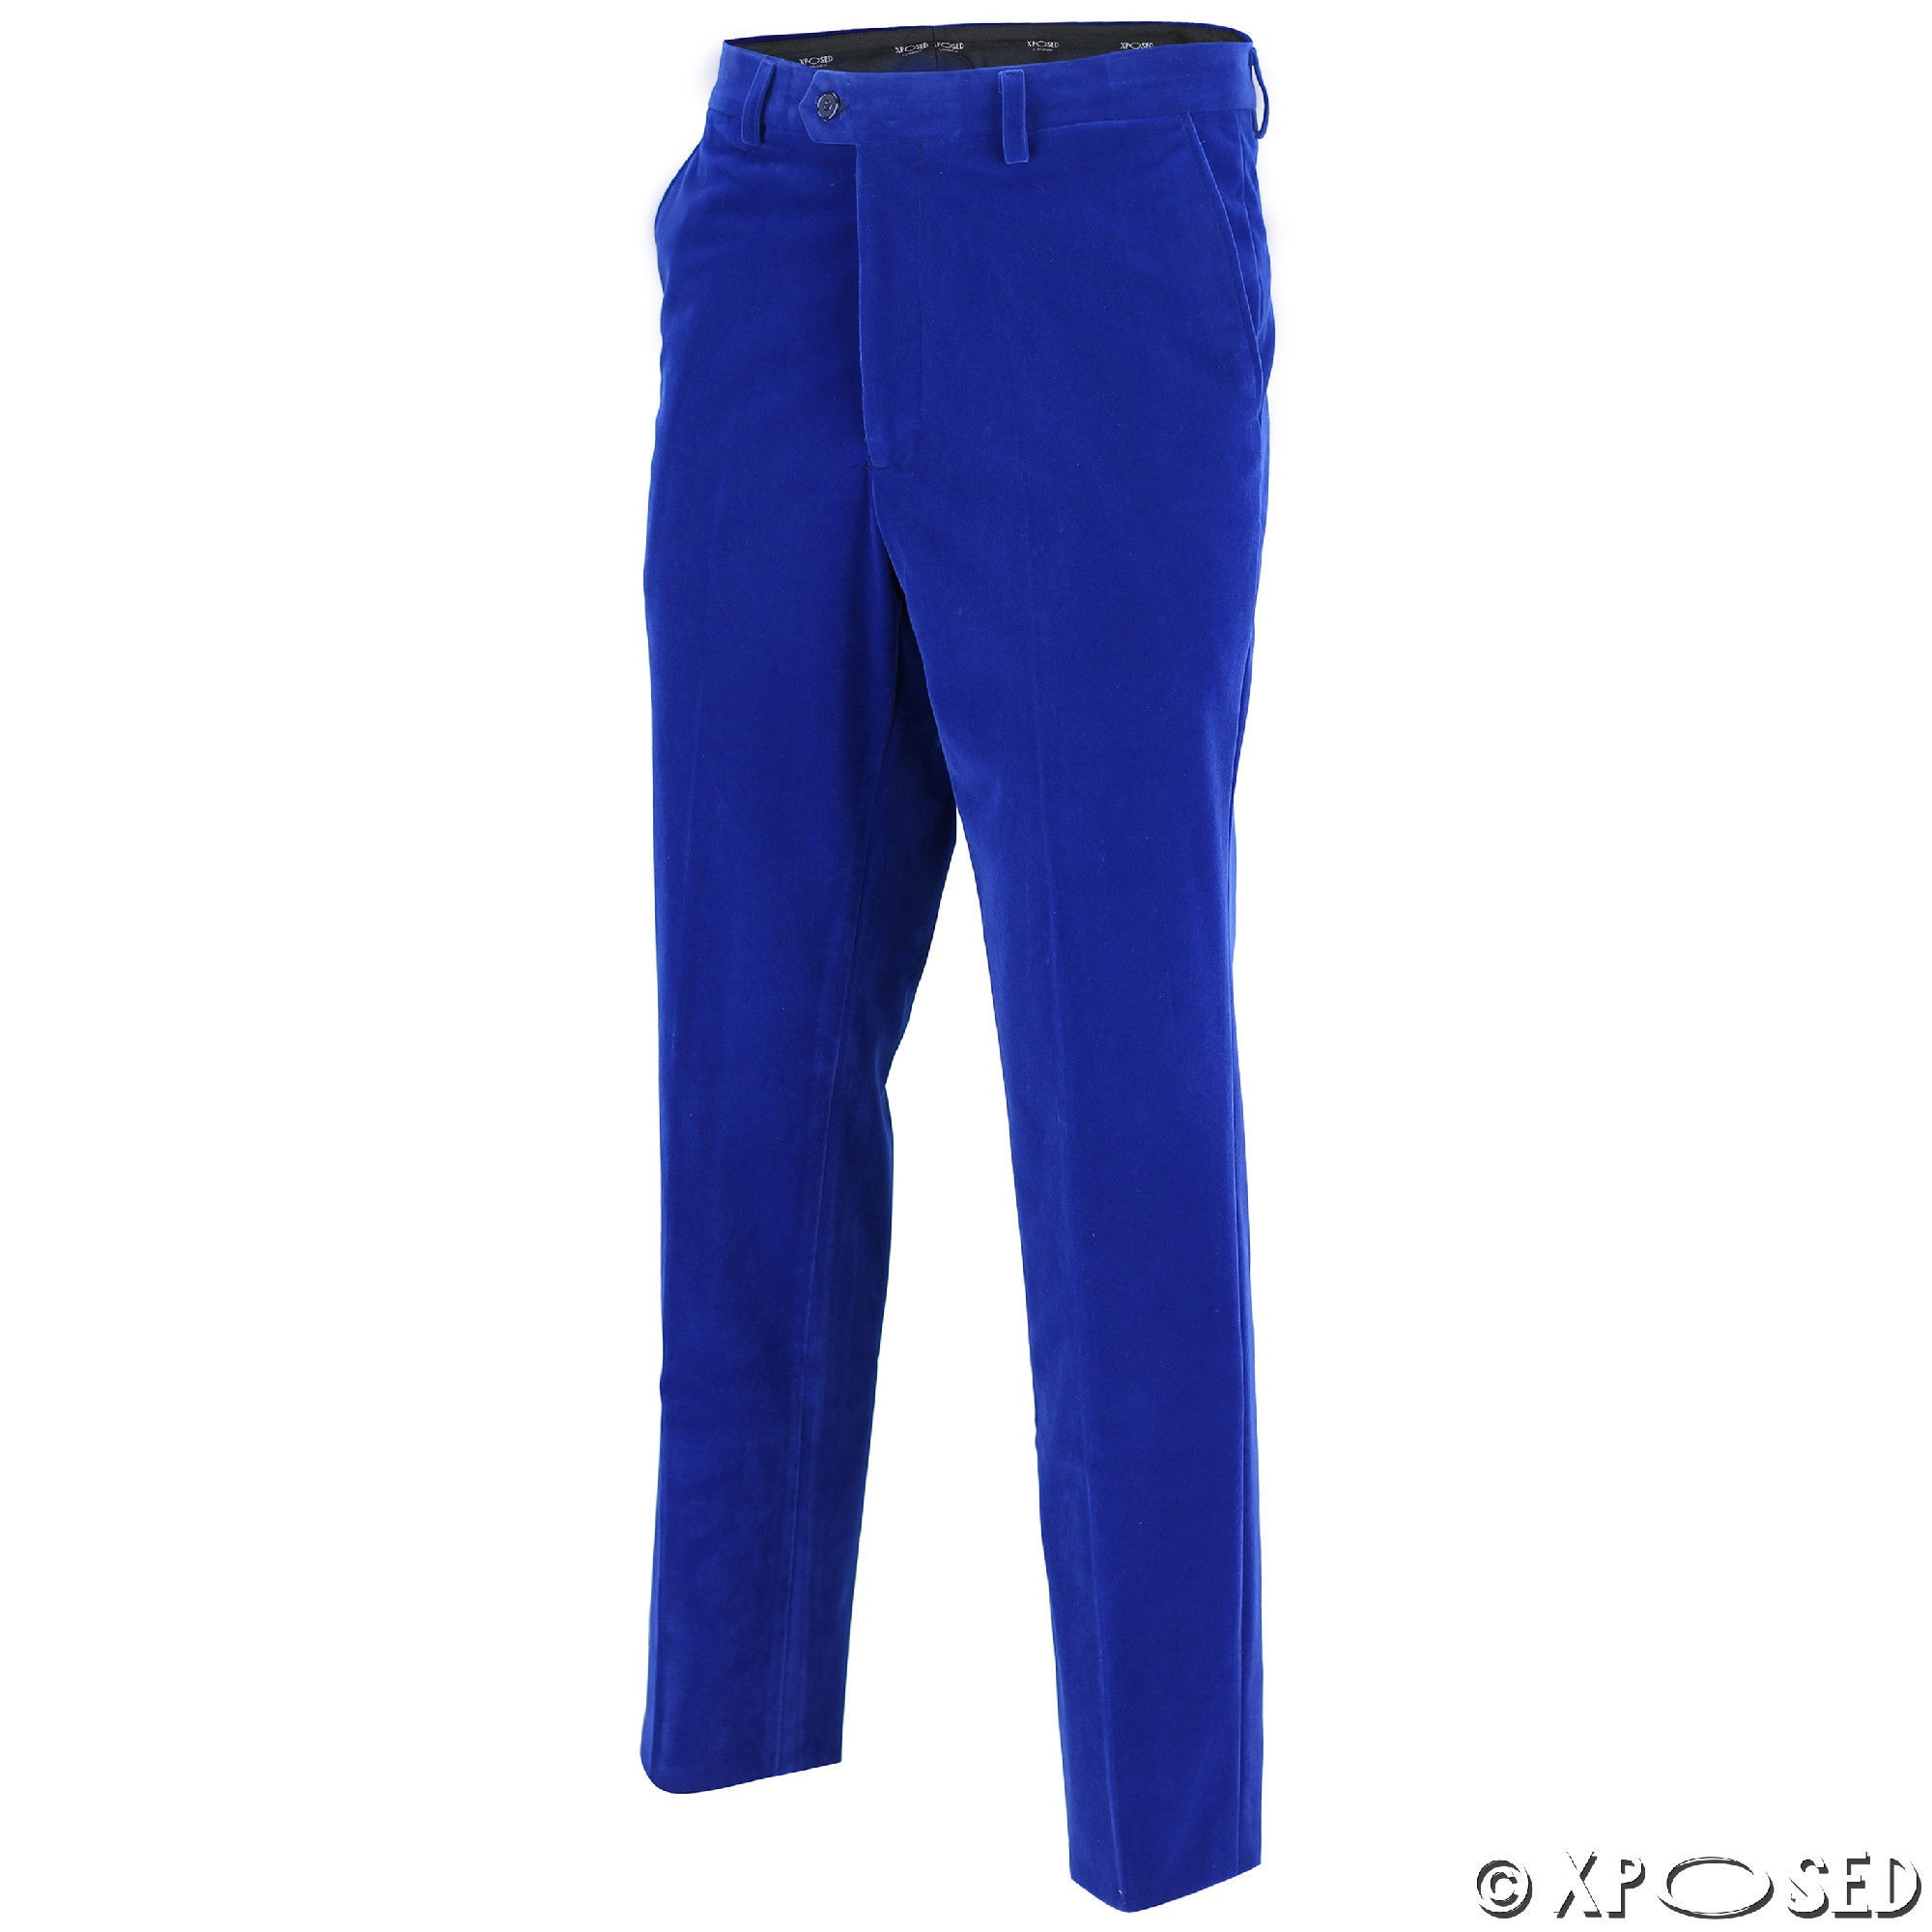 MensUSA has the largest selection of Any Style royal blue suit mens light blue suit royal blue pants mens royal blue jacket mens royal blue suit jacket blue and white suit royal blue dress pants mens royal blue and black suit and lots more on sale. Shop Online now!!!